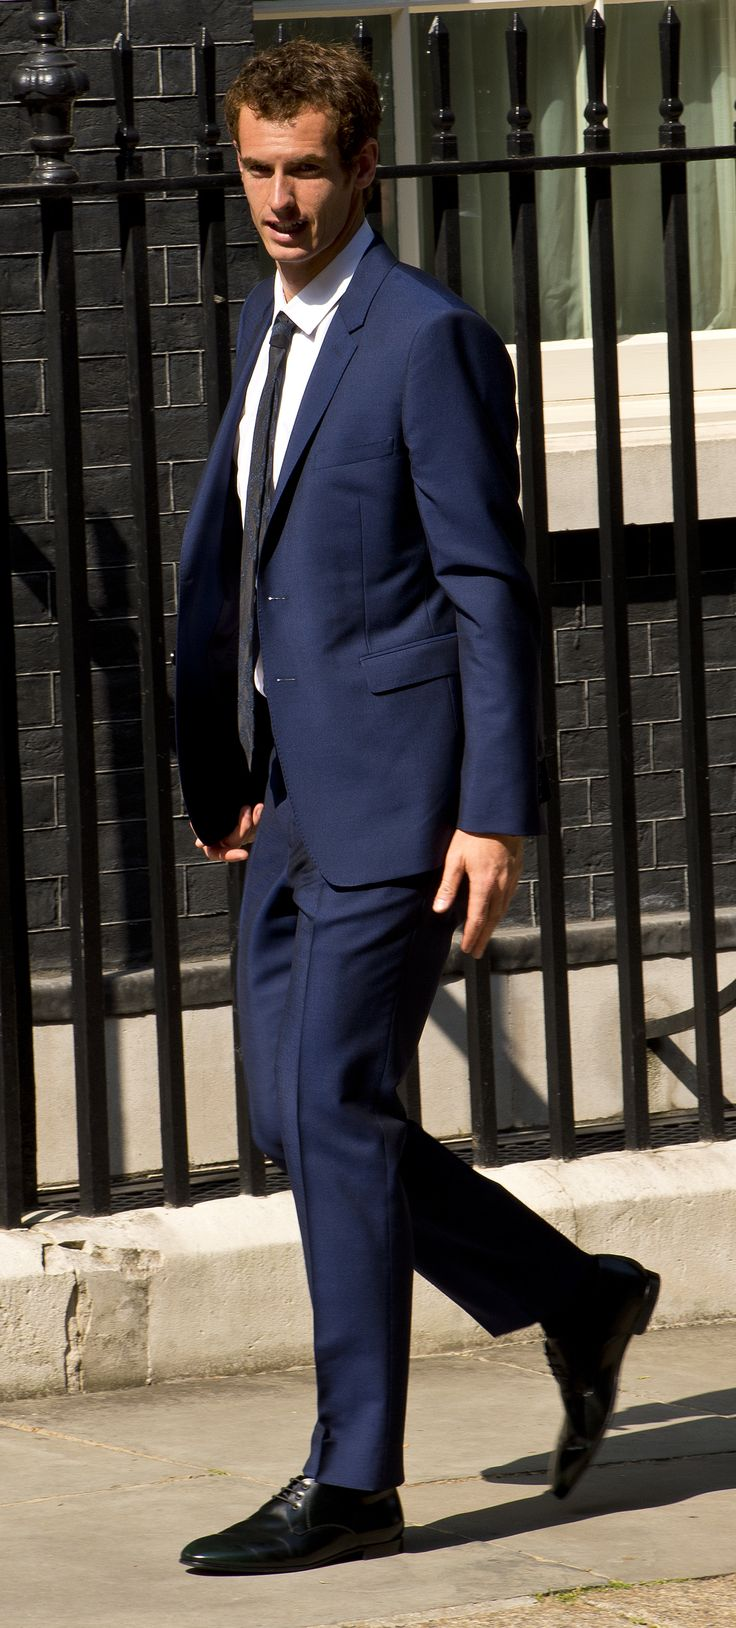 Wimbledon champion Andy Murray wearing Burberry tailoring to attend a reception at 10 Downing Street in London.  7/7/13 77 years wait.  https://www.gov.uk/government/history/10-downing-street#pelham-to-pitt  Prime Ministers Henry Pelham (1743 to 1754) & the Duke of Newcastle (1757 to 1762) preferred to live in their own residences.